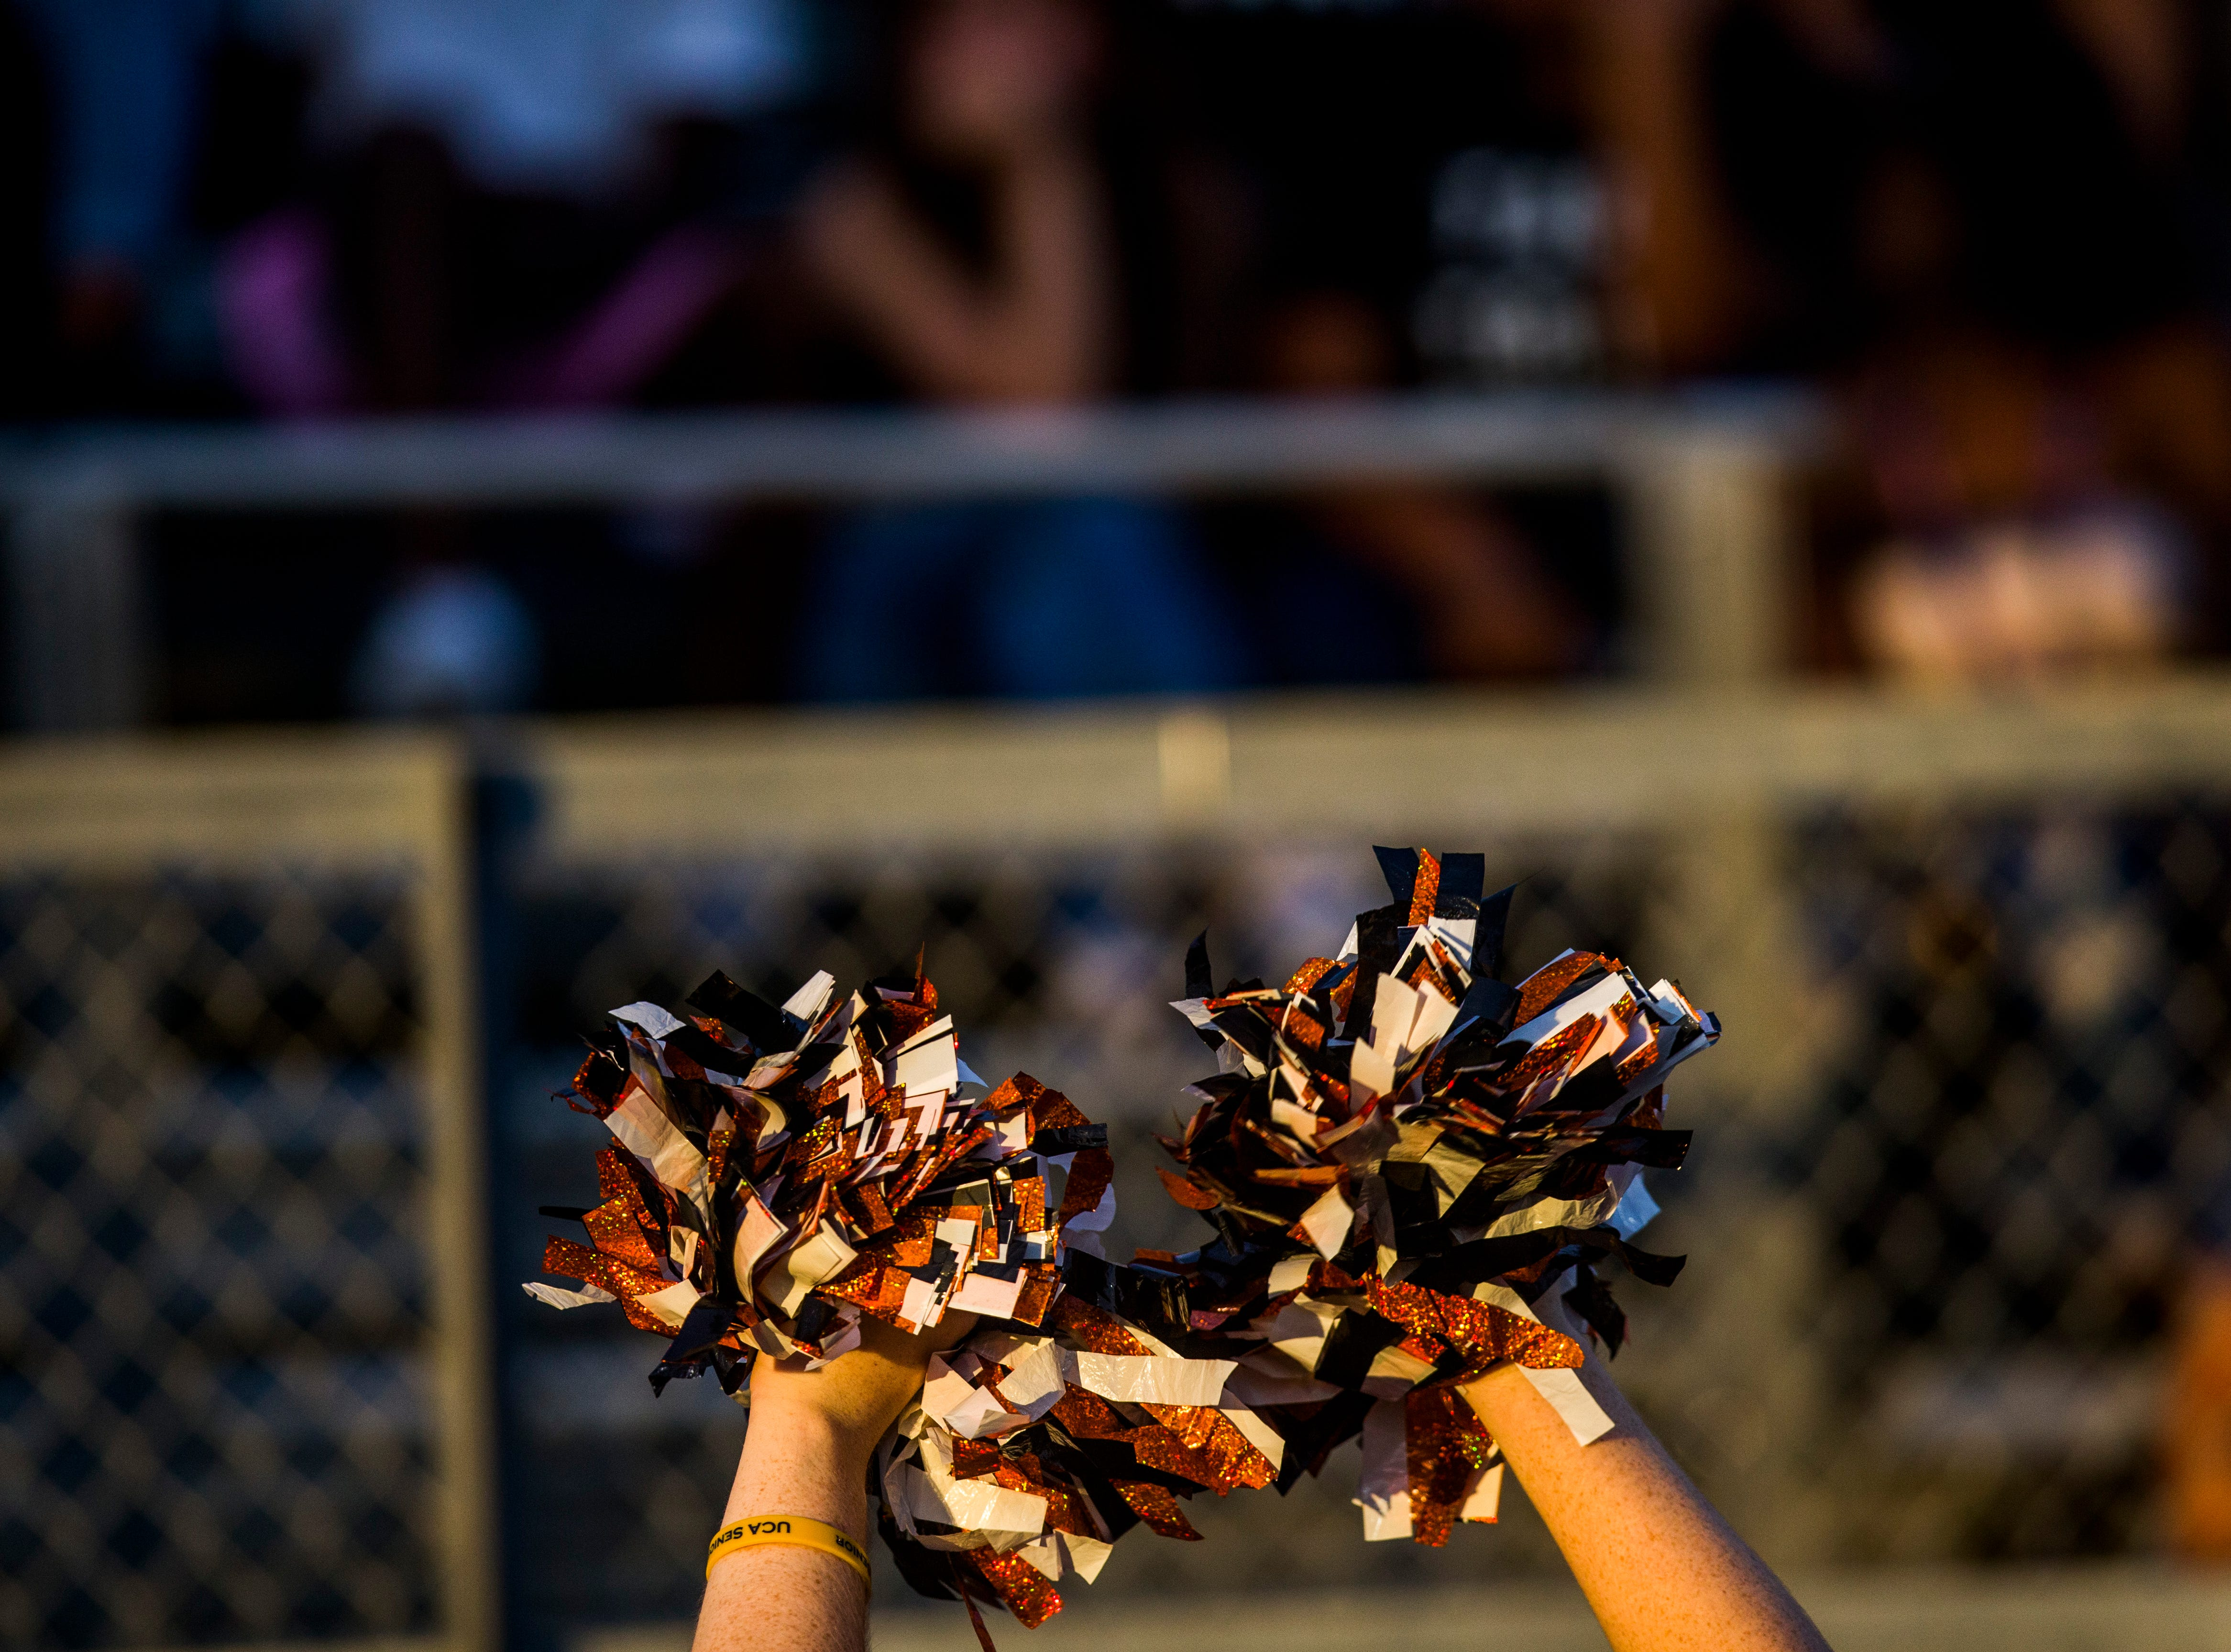 Lely cheerleaders lead cheers on the sidelines during the game against Golden Gate at Lely High School on Friday, Sept. 7, 2018.